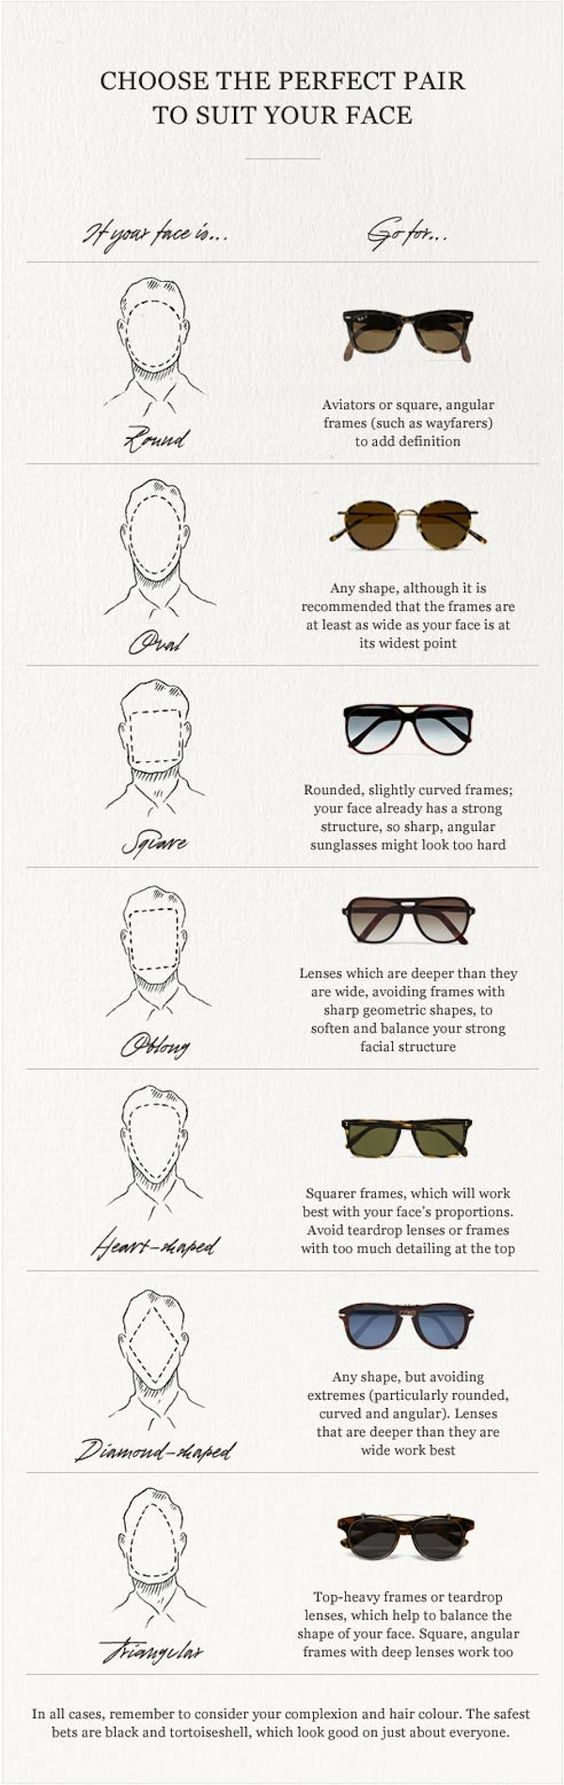 Men's Sunglasses by Face Shape | Be hair aware and how your face is structured to pic the right shades for your face. Visit www.TheLAFashion.com for Fashion insights and tips.